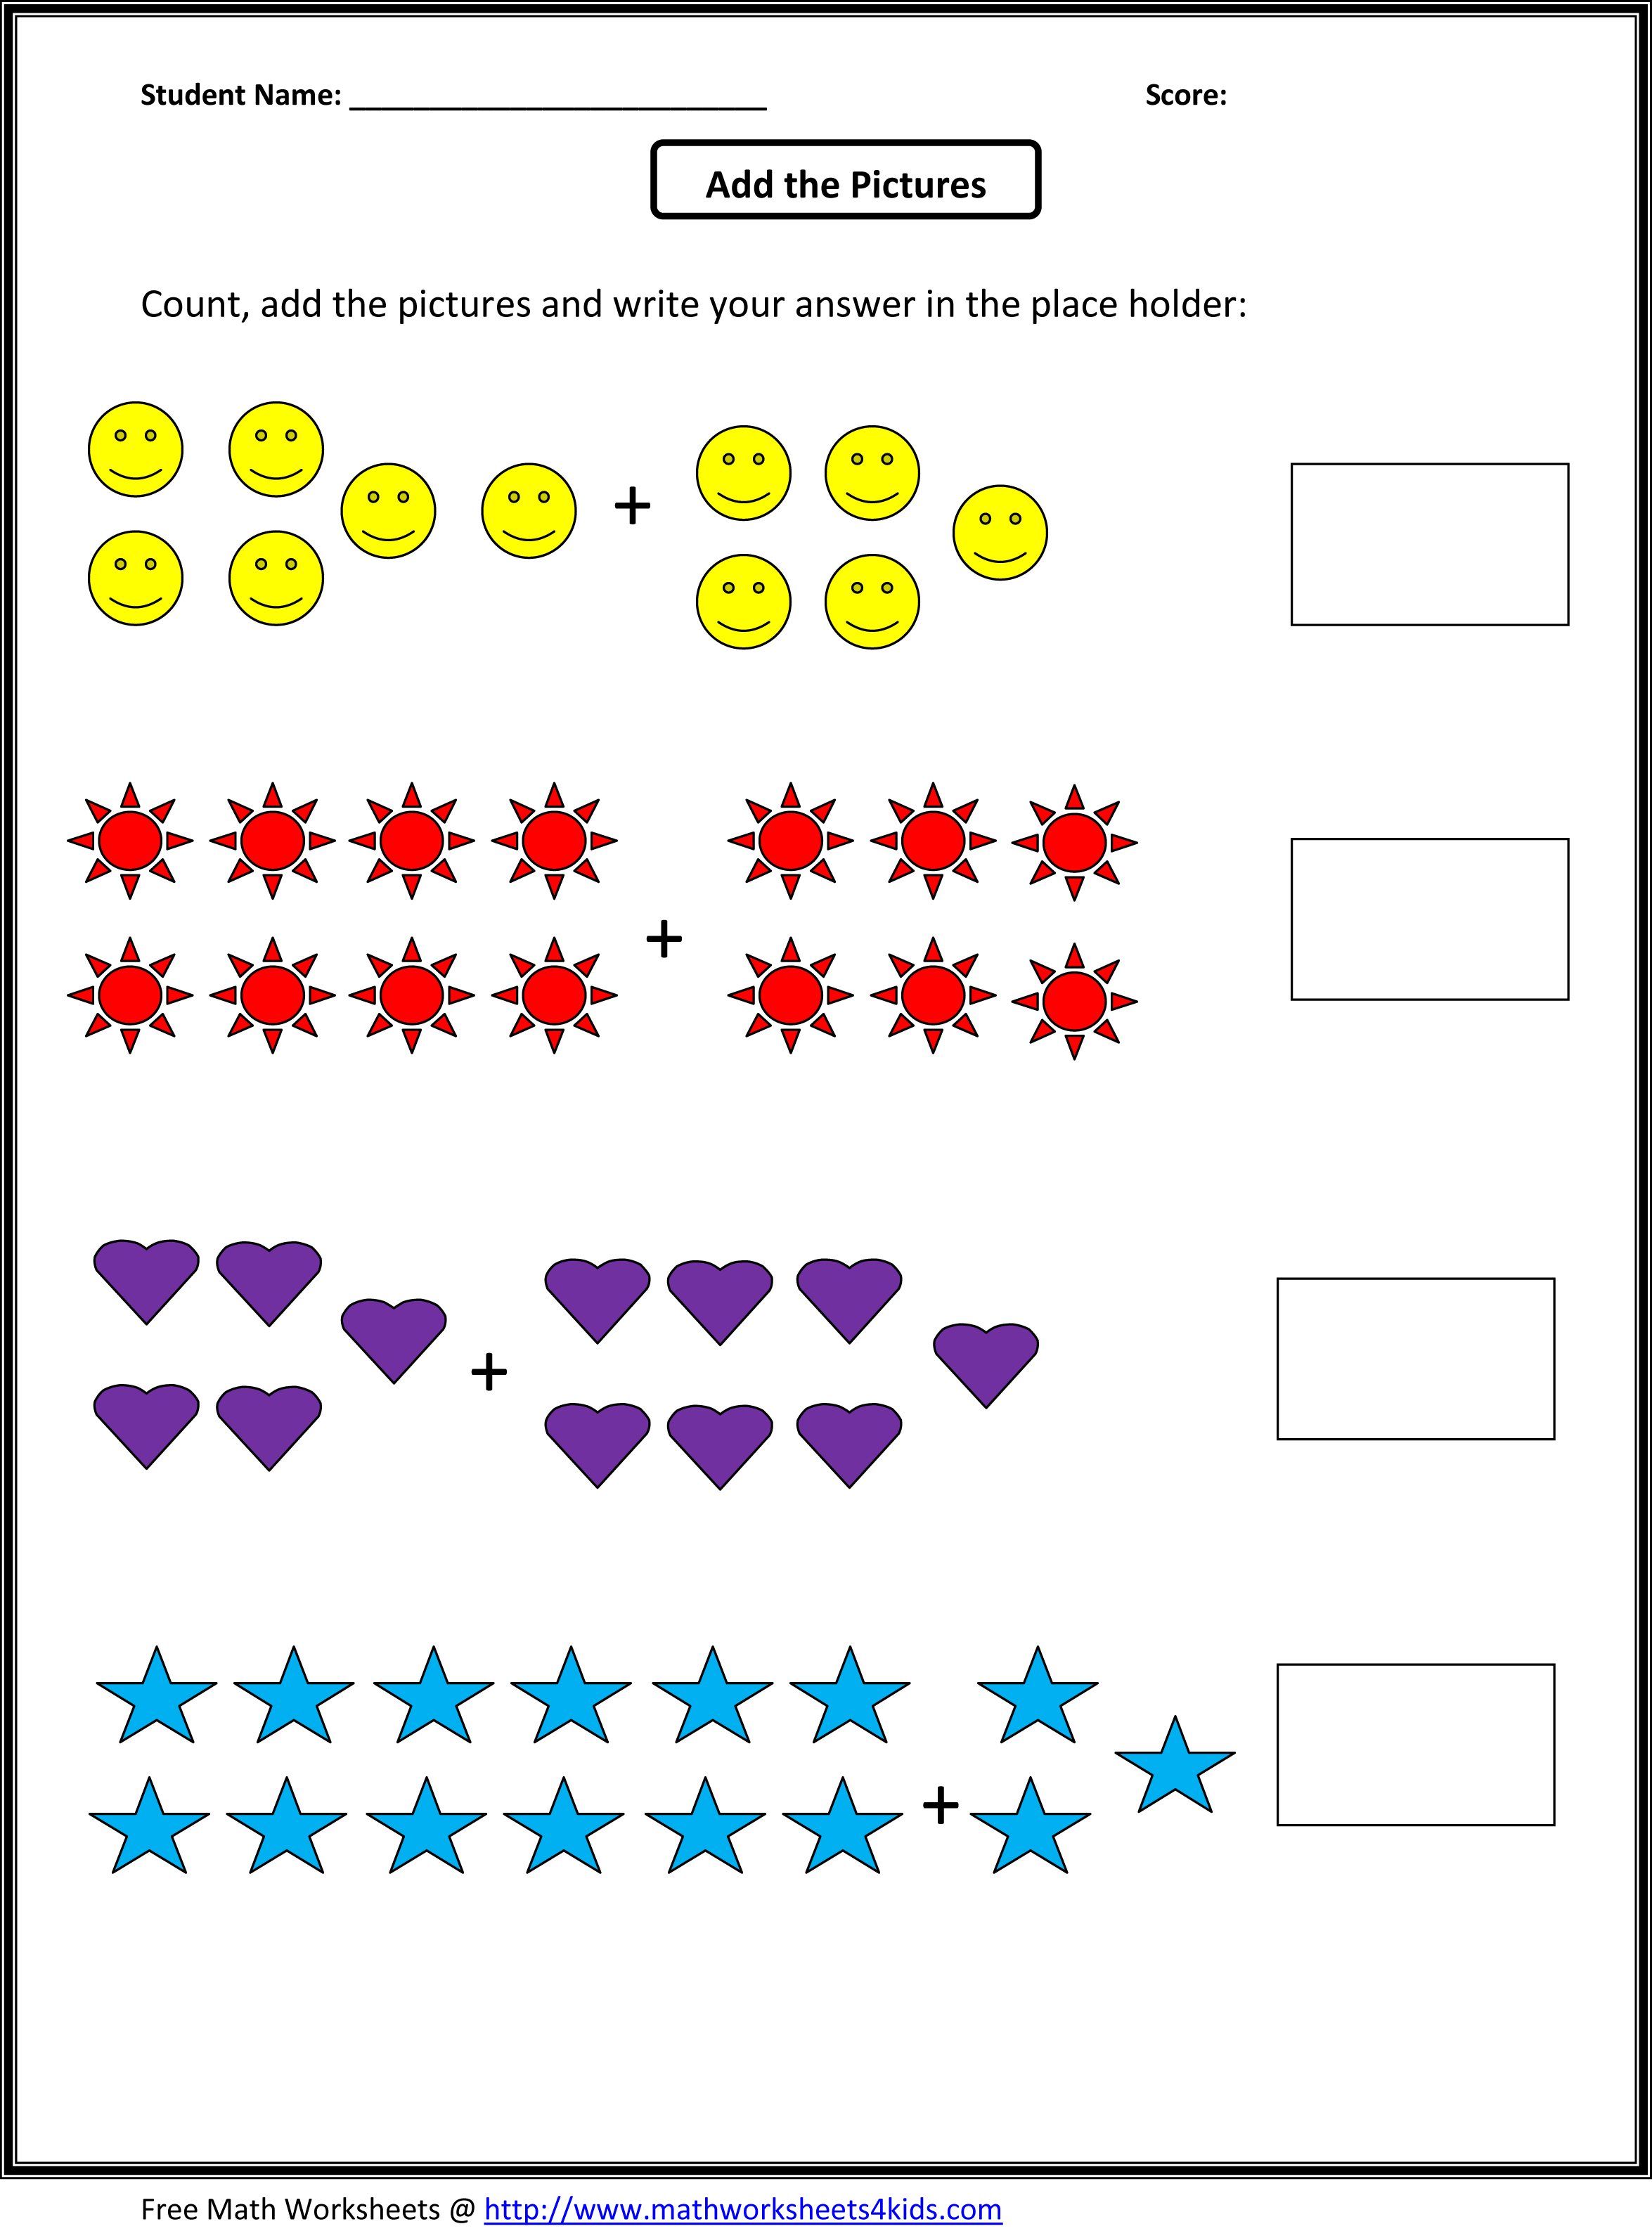 Weirdmailus  Unusual Grade  Maths Worksheet  Reocurent With Engaging Math Worksheets For St Grade Free  Reocurent With Beautiful Writing Nuclear Equations Chem Worksheet   Answers Also Build An Atom Worksheet In Addition Writing The Equation Of A Line Worksheet And Sound Worksheet Answers As Well As Making Inferences Worksheet Additionally Map Skills Worksheets From Reocurentcom With Weirdmailus  Engaging Grade  Maths Worksheet  Reocurent With Beautiful Math Worksheets For St Grade Free  Reocurent And Unusual Writing Nuclear Equations Chem Worksheet   Answers Also Build An Atom Worksheet In Addition Writing The Equation Of A Line Worksheet From Reocurentcom